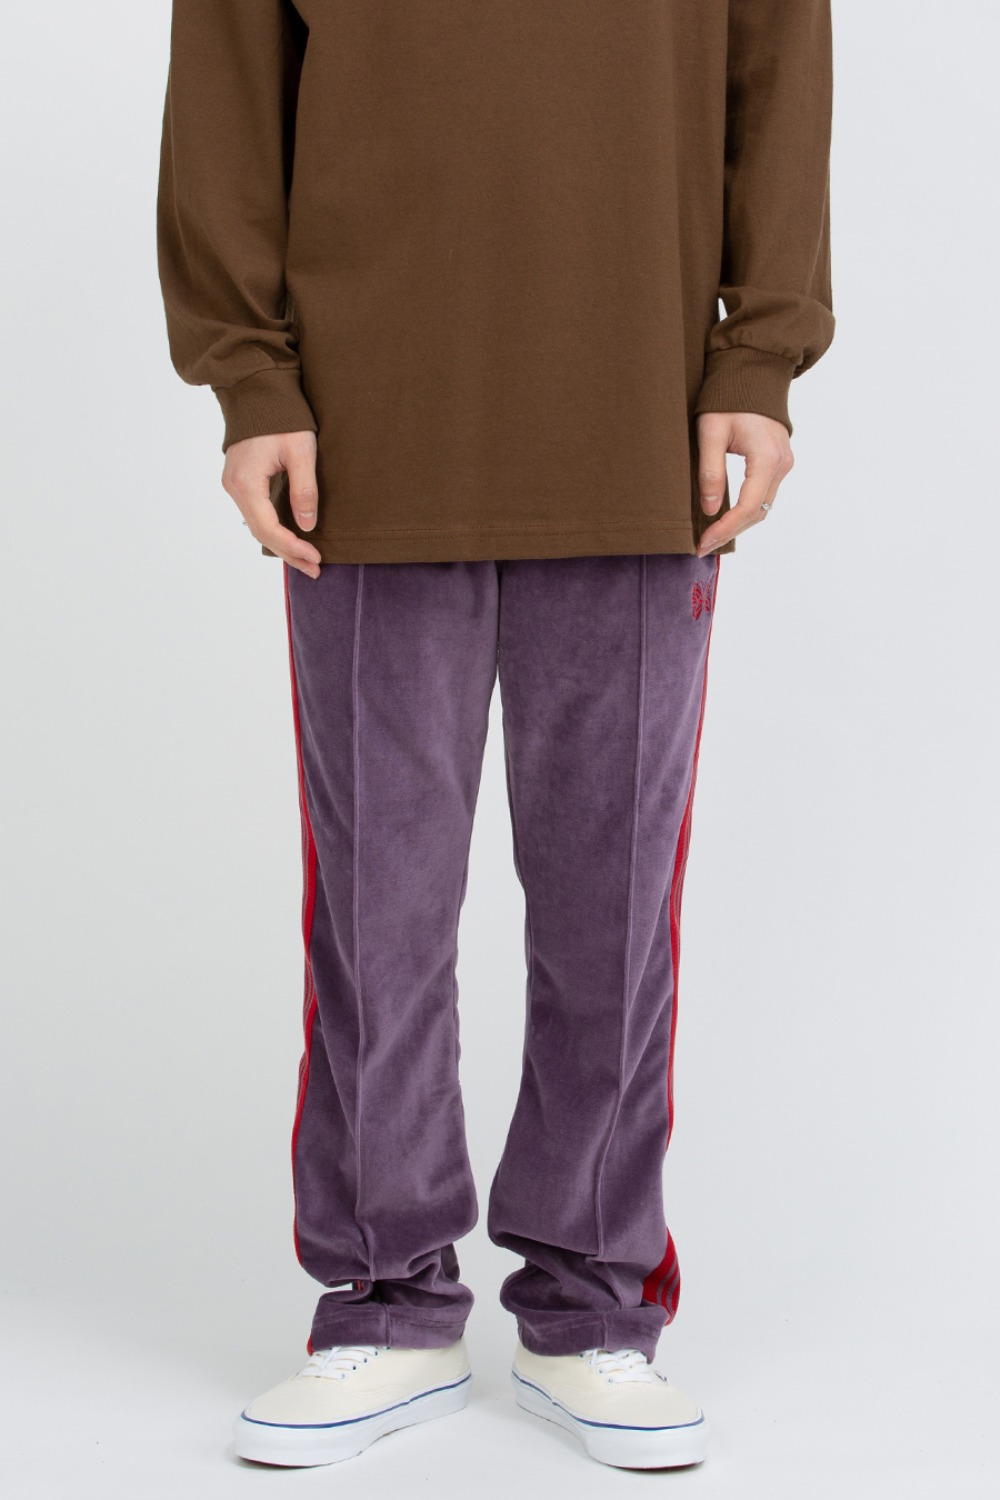 NARROW TRACK PANT - C/PE VELOUR PURPLE